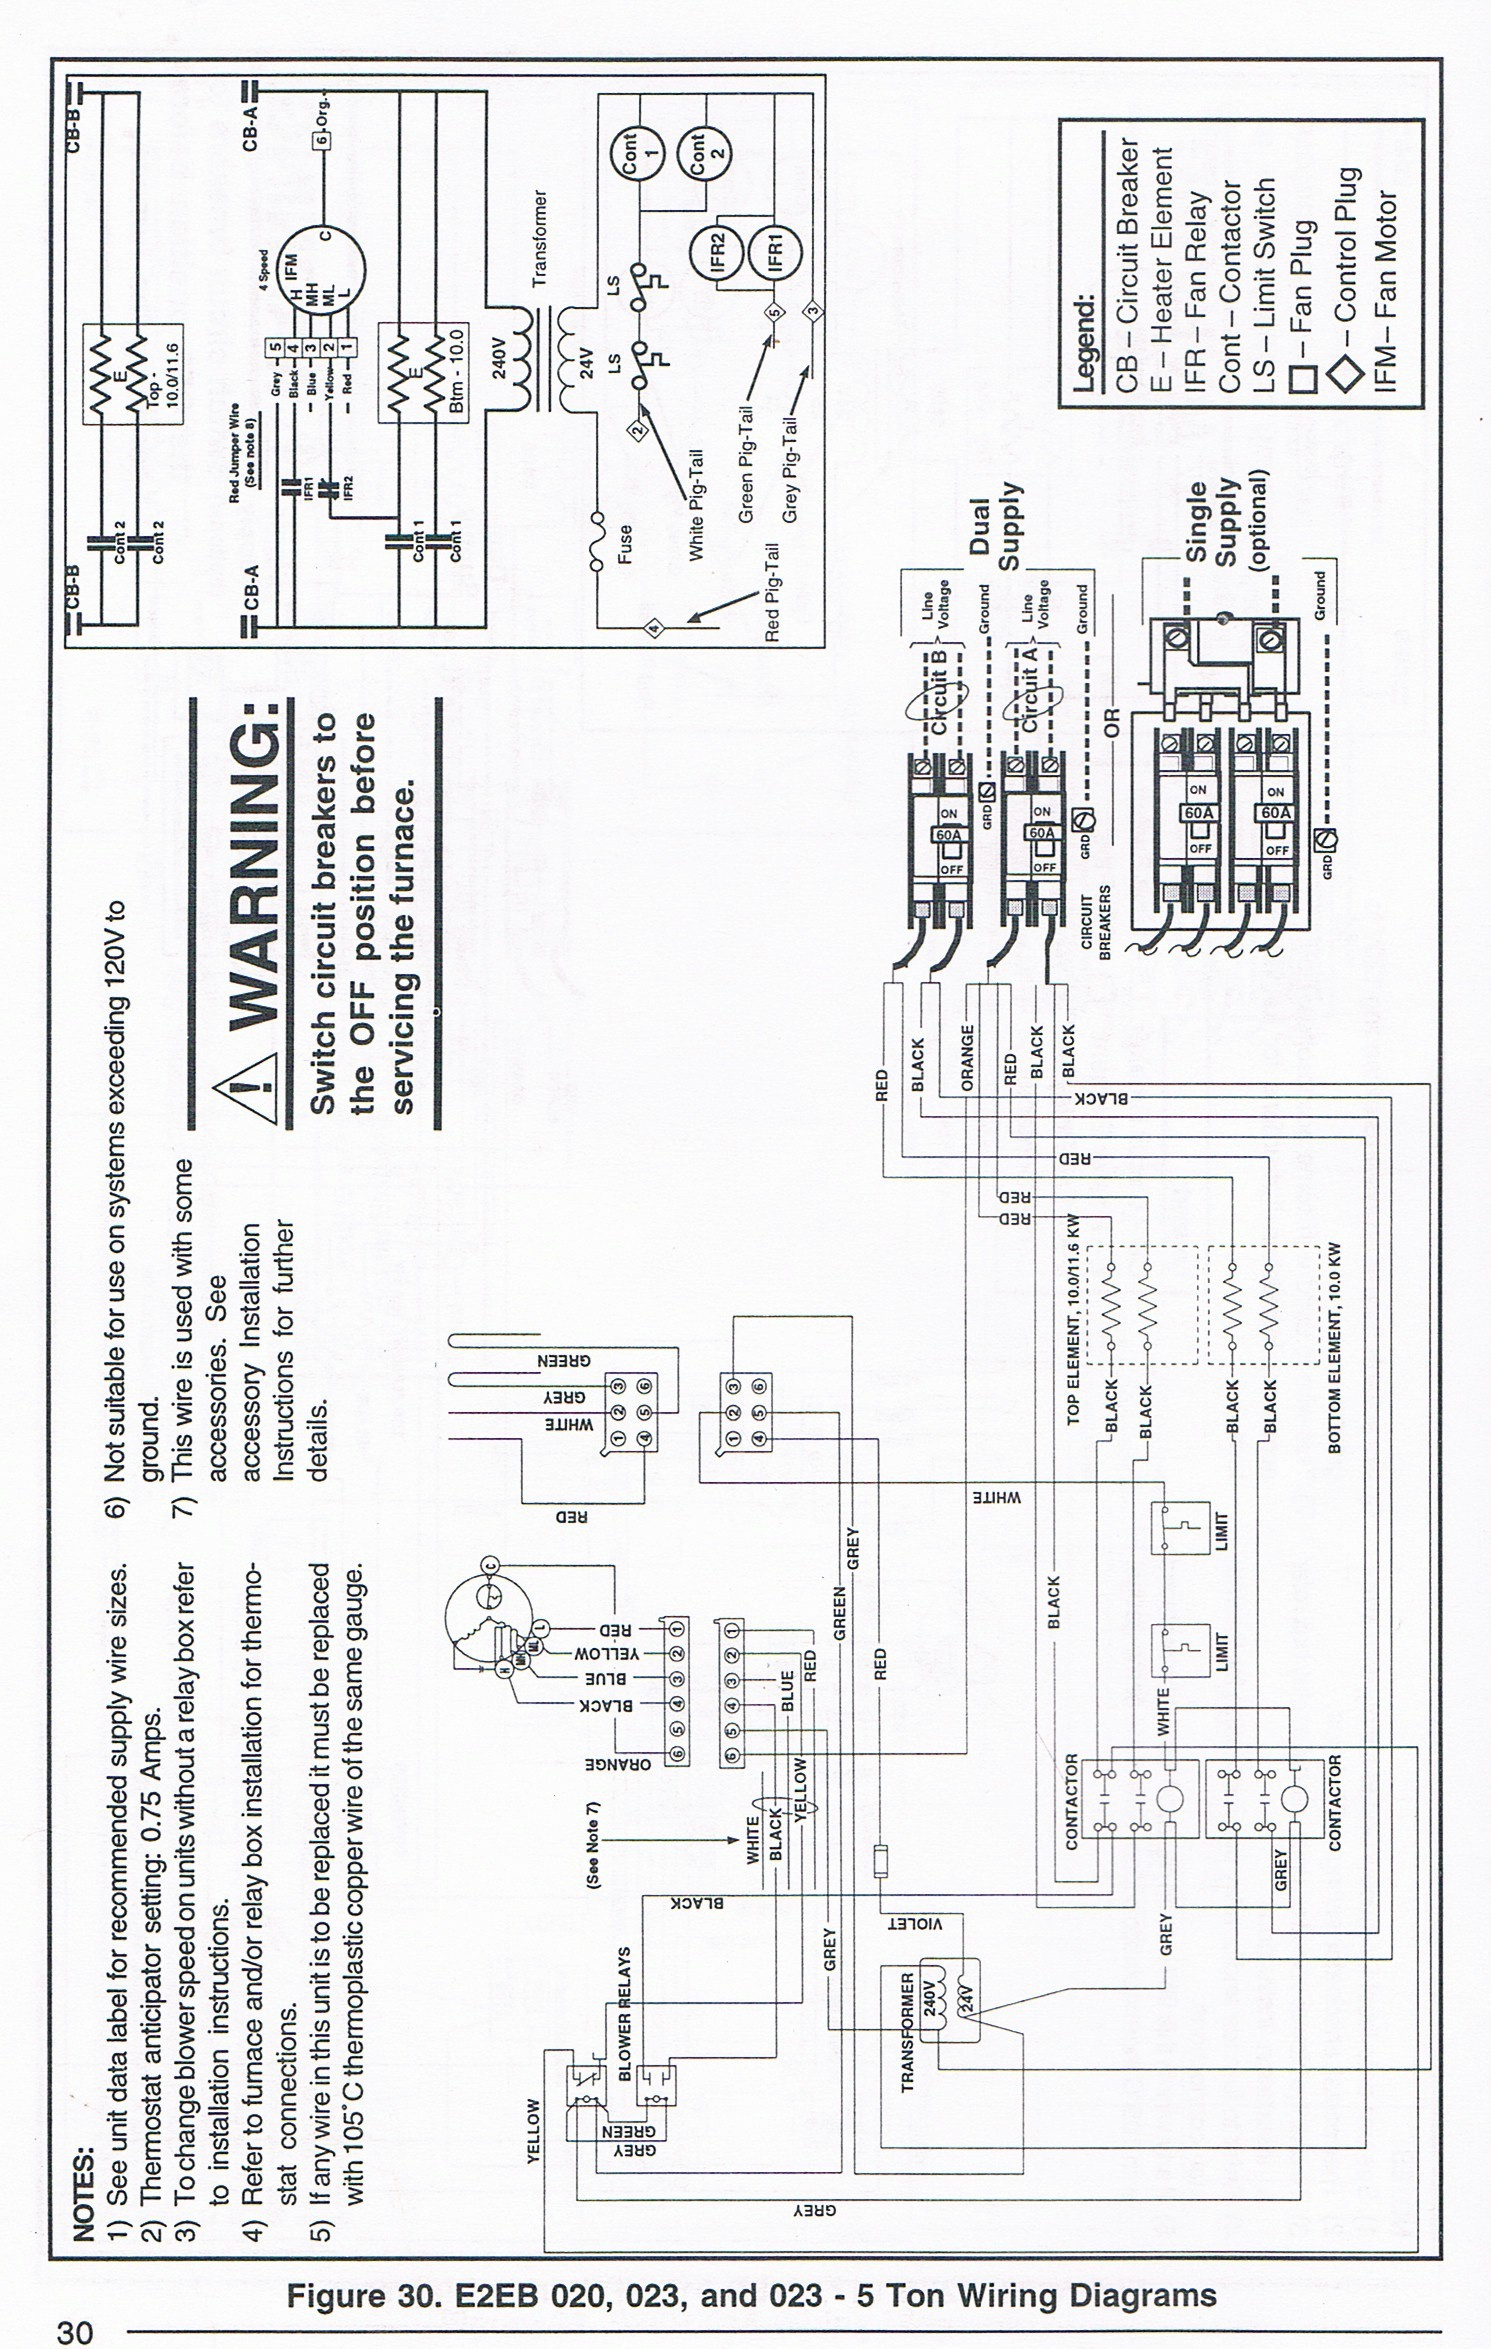 York Heat Pump Wiring Diagrams Readingrat Net In For Diagram Goodman - Electric Furnace Wiring Diagram